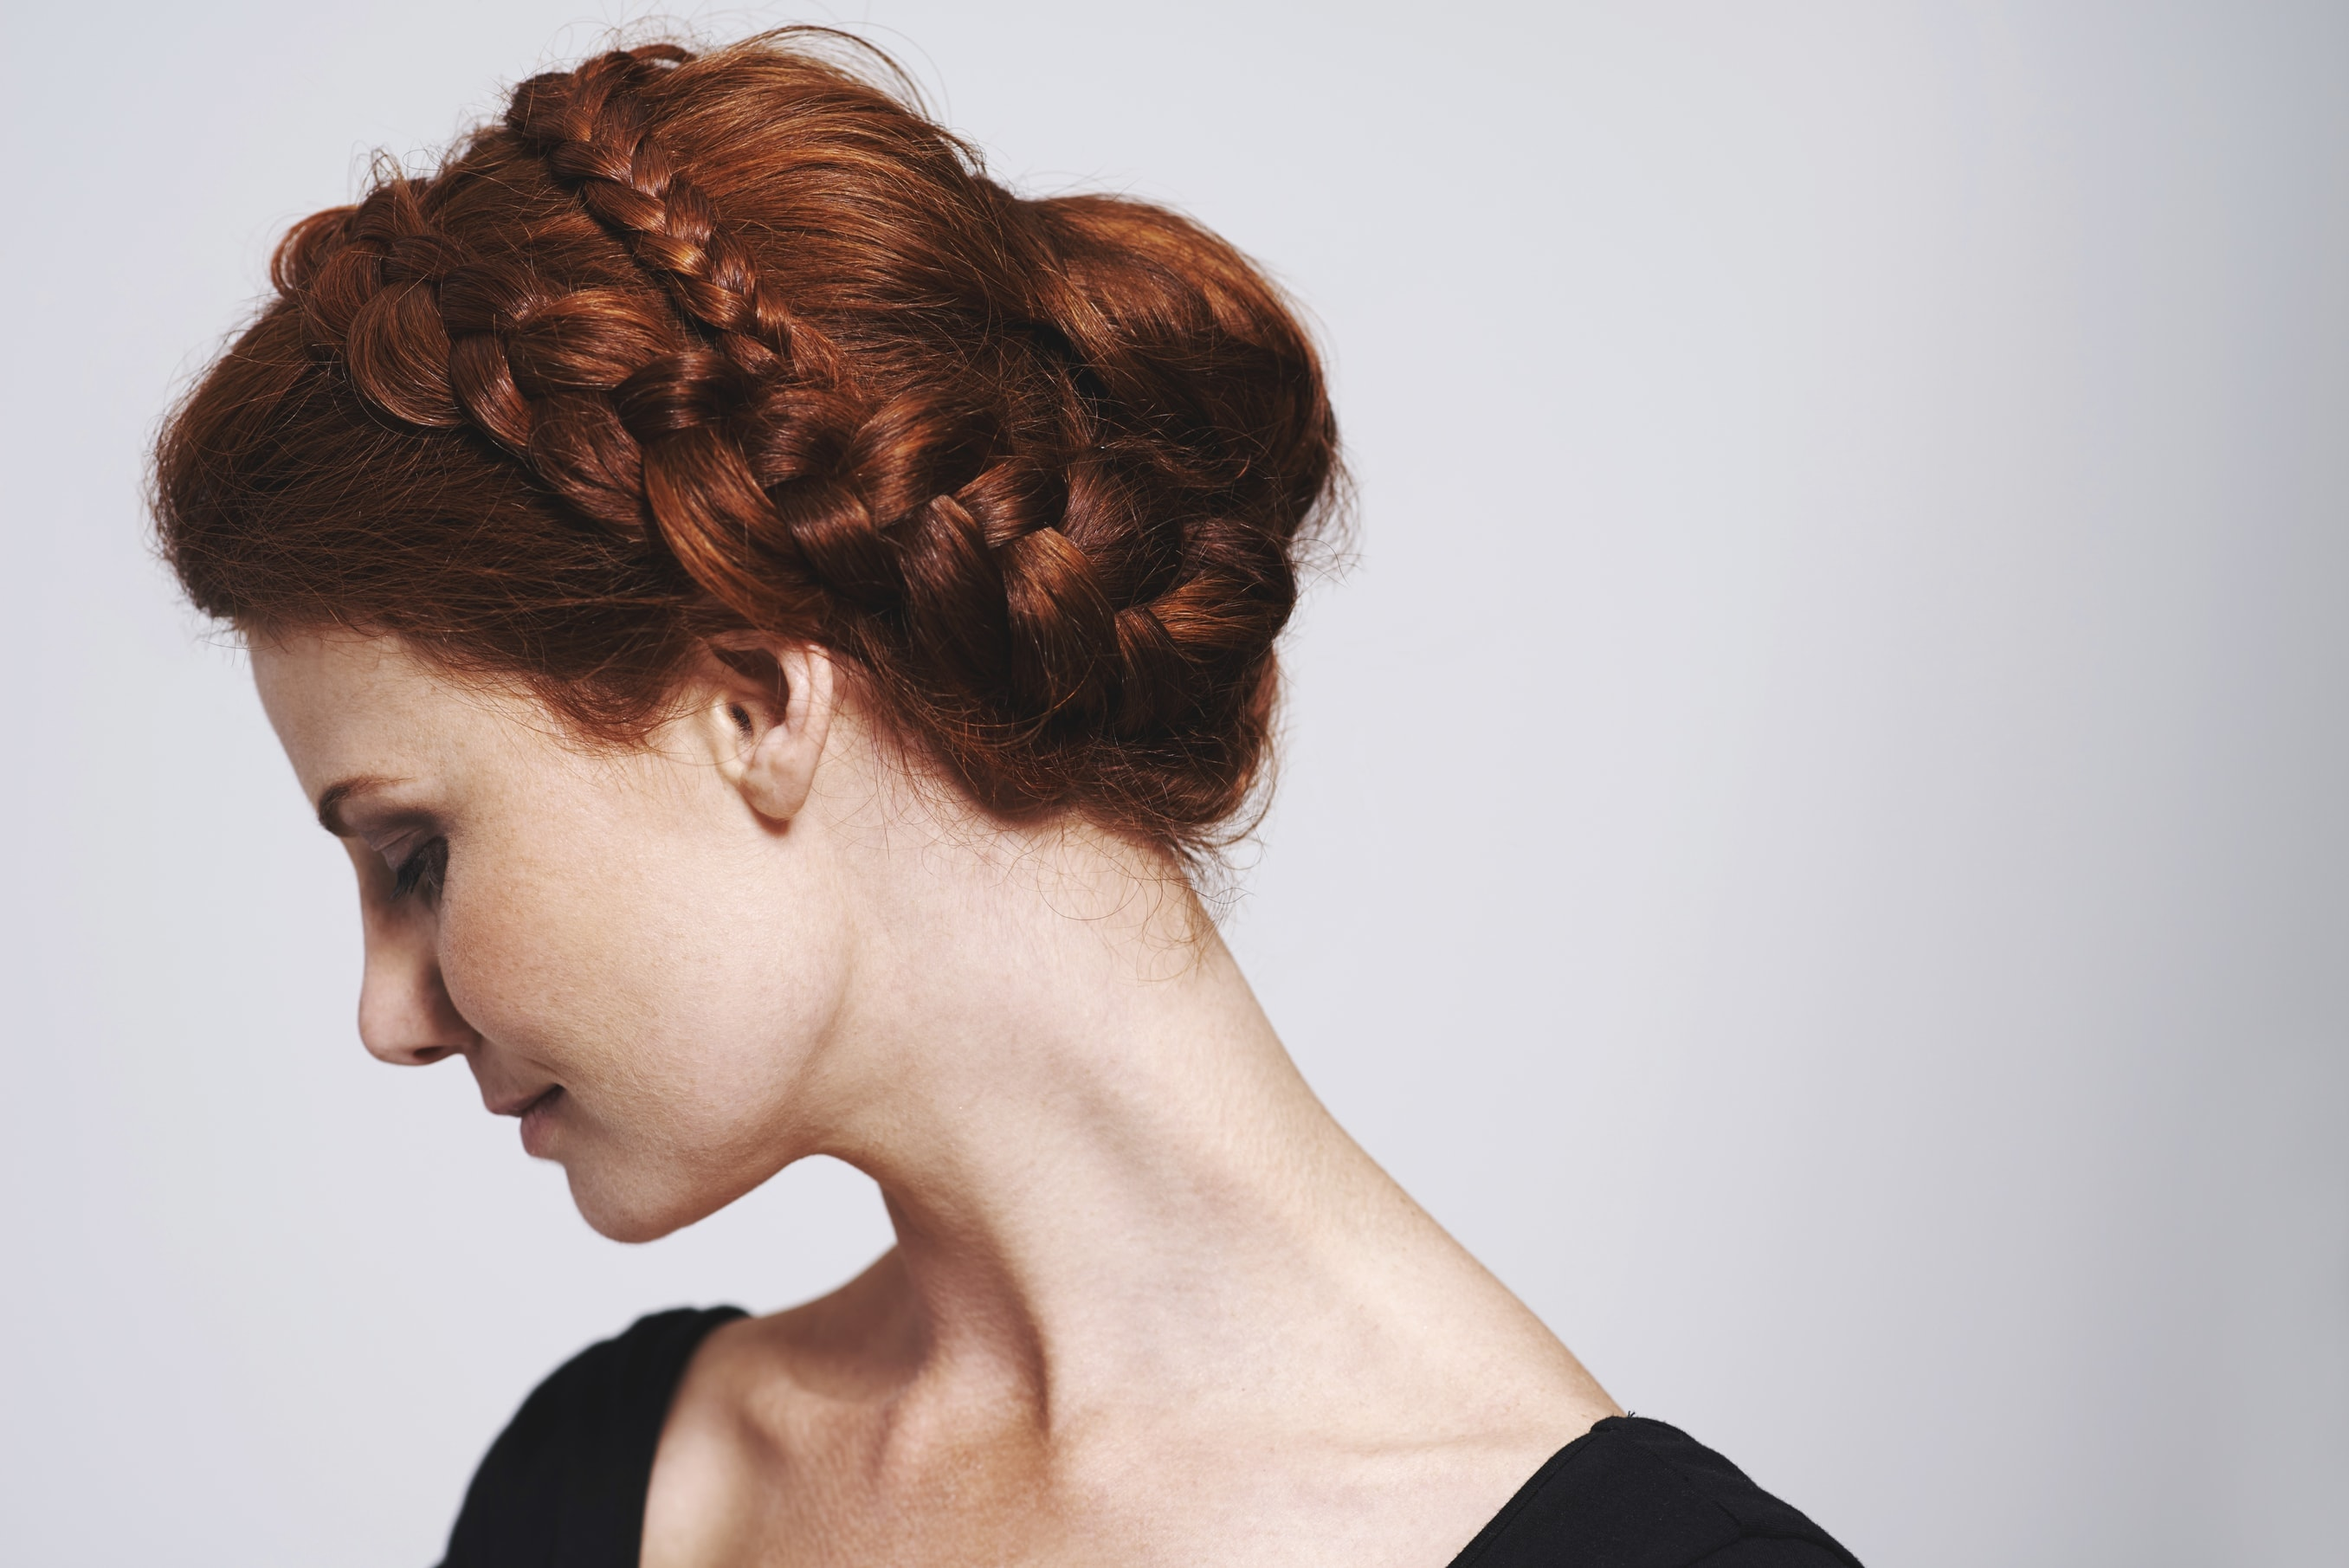 7 Easy bun hairstyles for every occasion